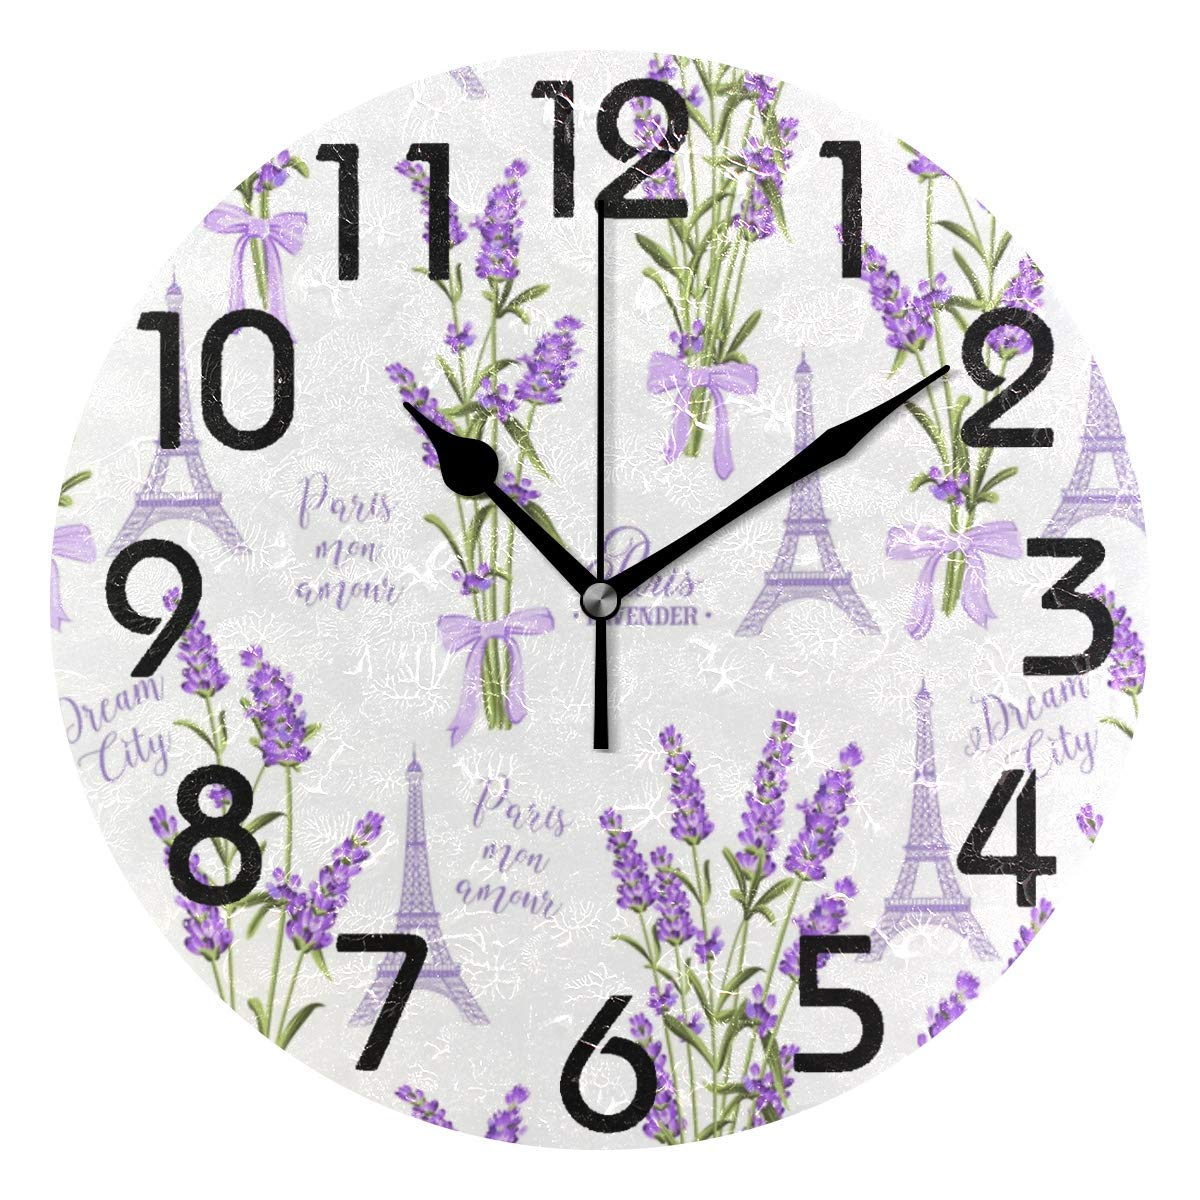 Dozili Stylish Fresh Lavender Flowers and Eiffel Tower Pattern Round Wall Clock Arabic Numerals Design Non Ticking Wall Clock Large for Bedrooms,Living Room,Bathroom